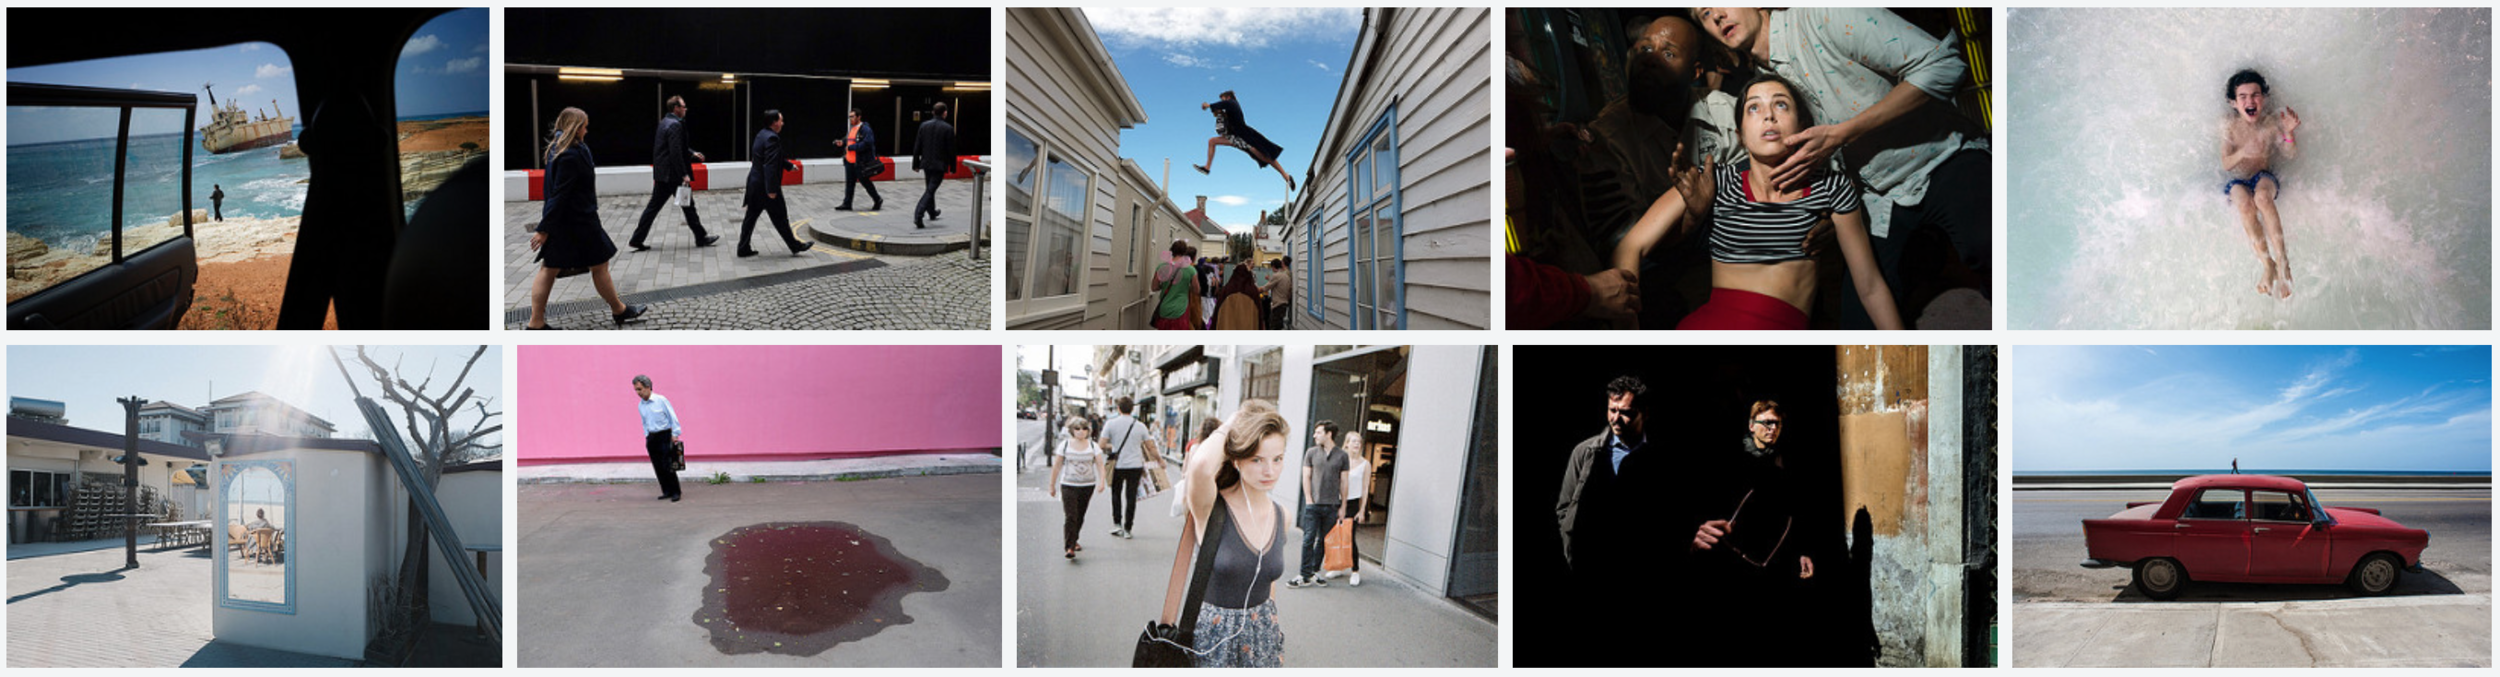 A screenshot from the front page of the group currently. Photographers' credits and from left to right, first to second row,   Eleni Rimantonaki , streetmax , pinel777 , Chris Suspect , Jeff Larson (Raw Power) , Matteo Sigolo , Alexei Yurie , Marco Giusfredi , Stefano Lista , Alison McCauley